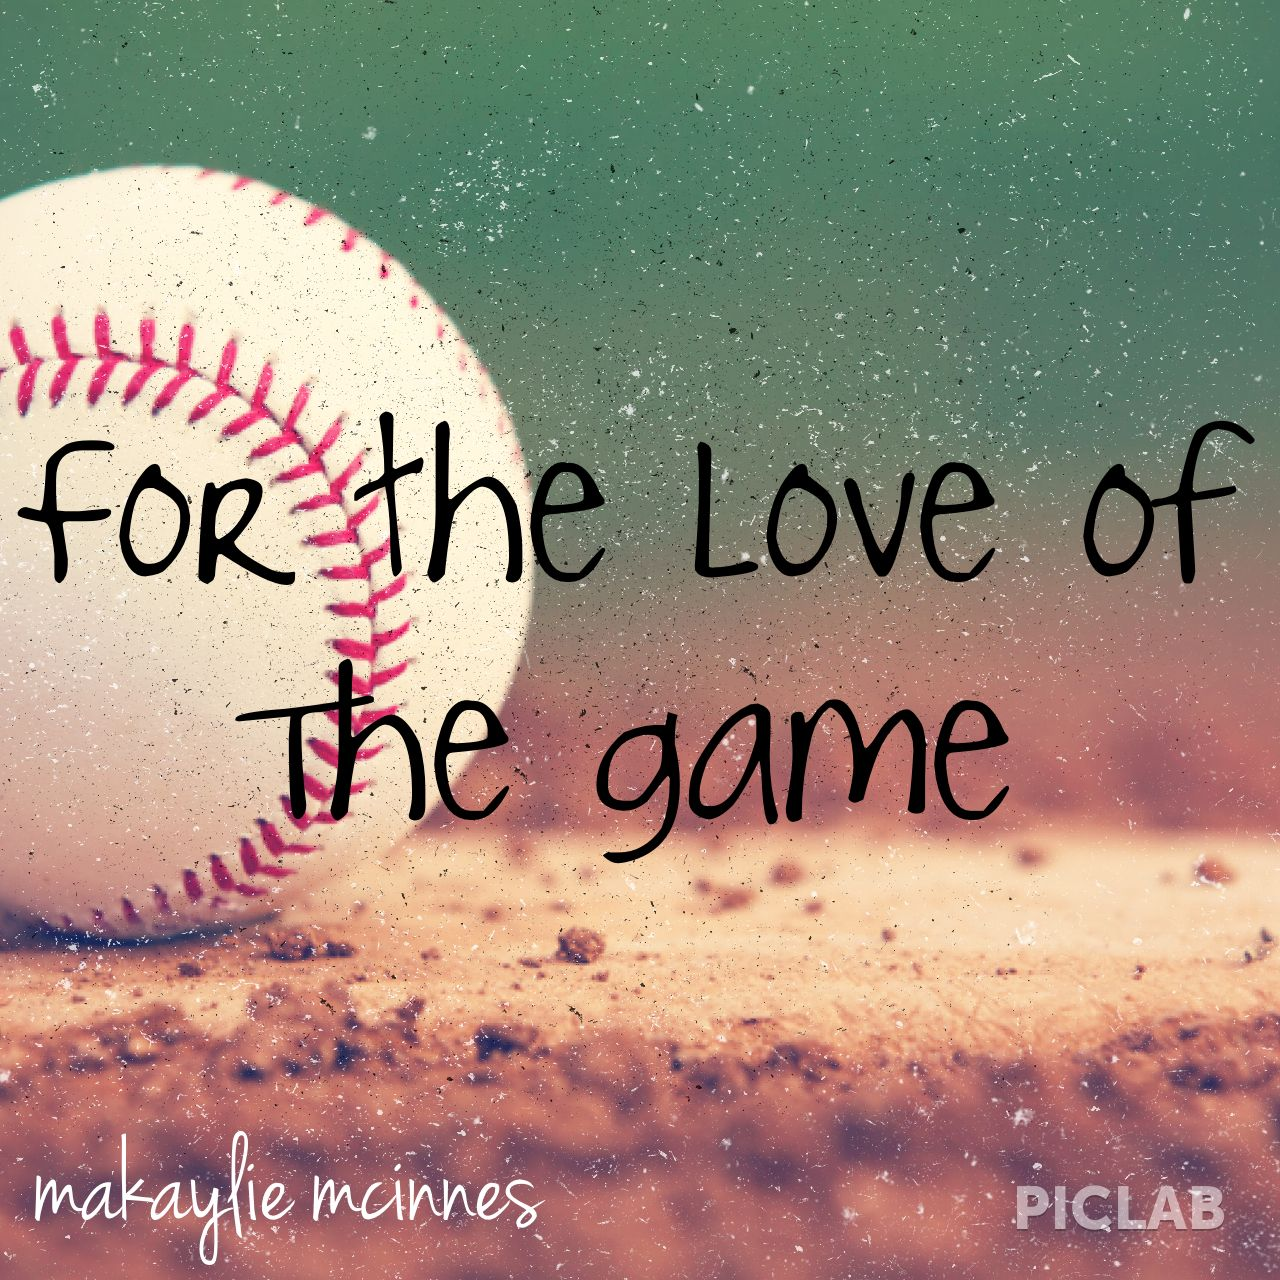 Baseball Love Quotes Baseball  Sports  Pinterest  The O'jays Love This And The Games